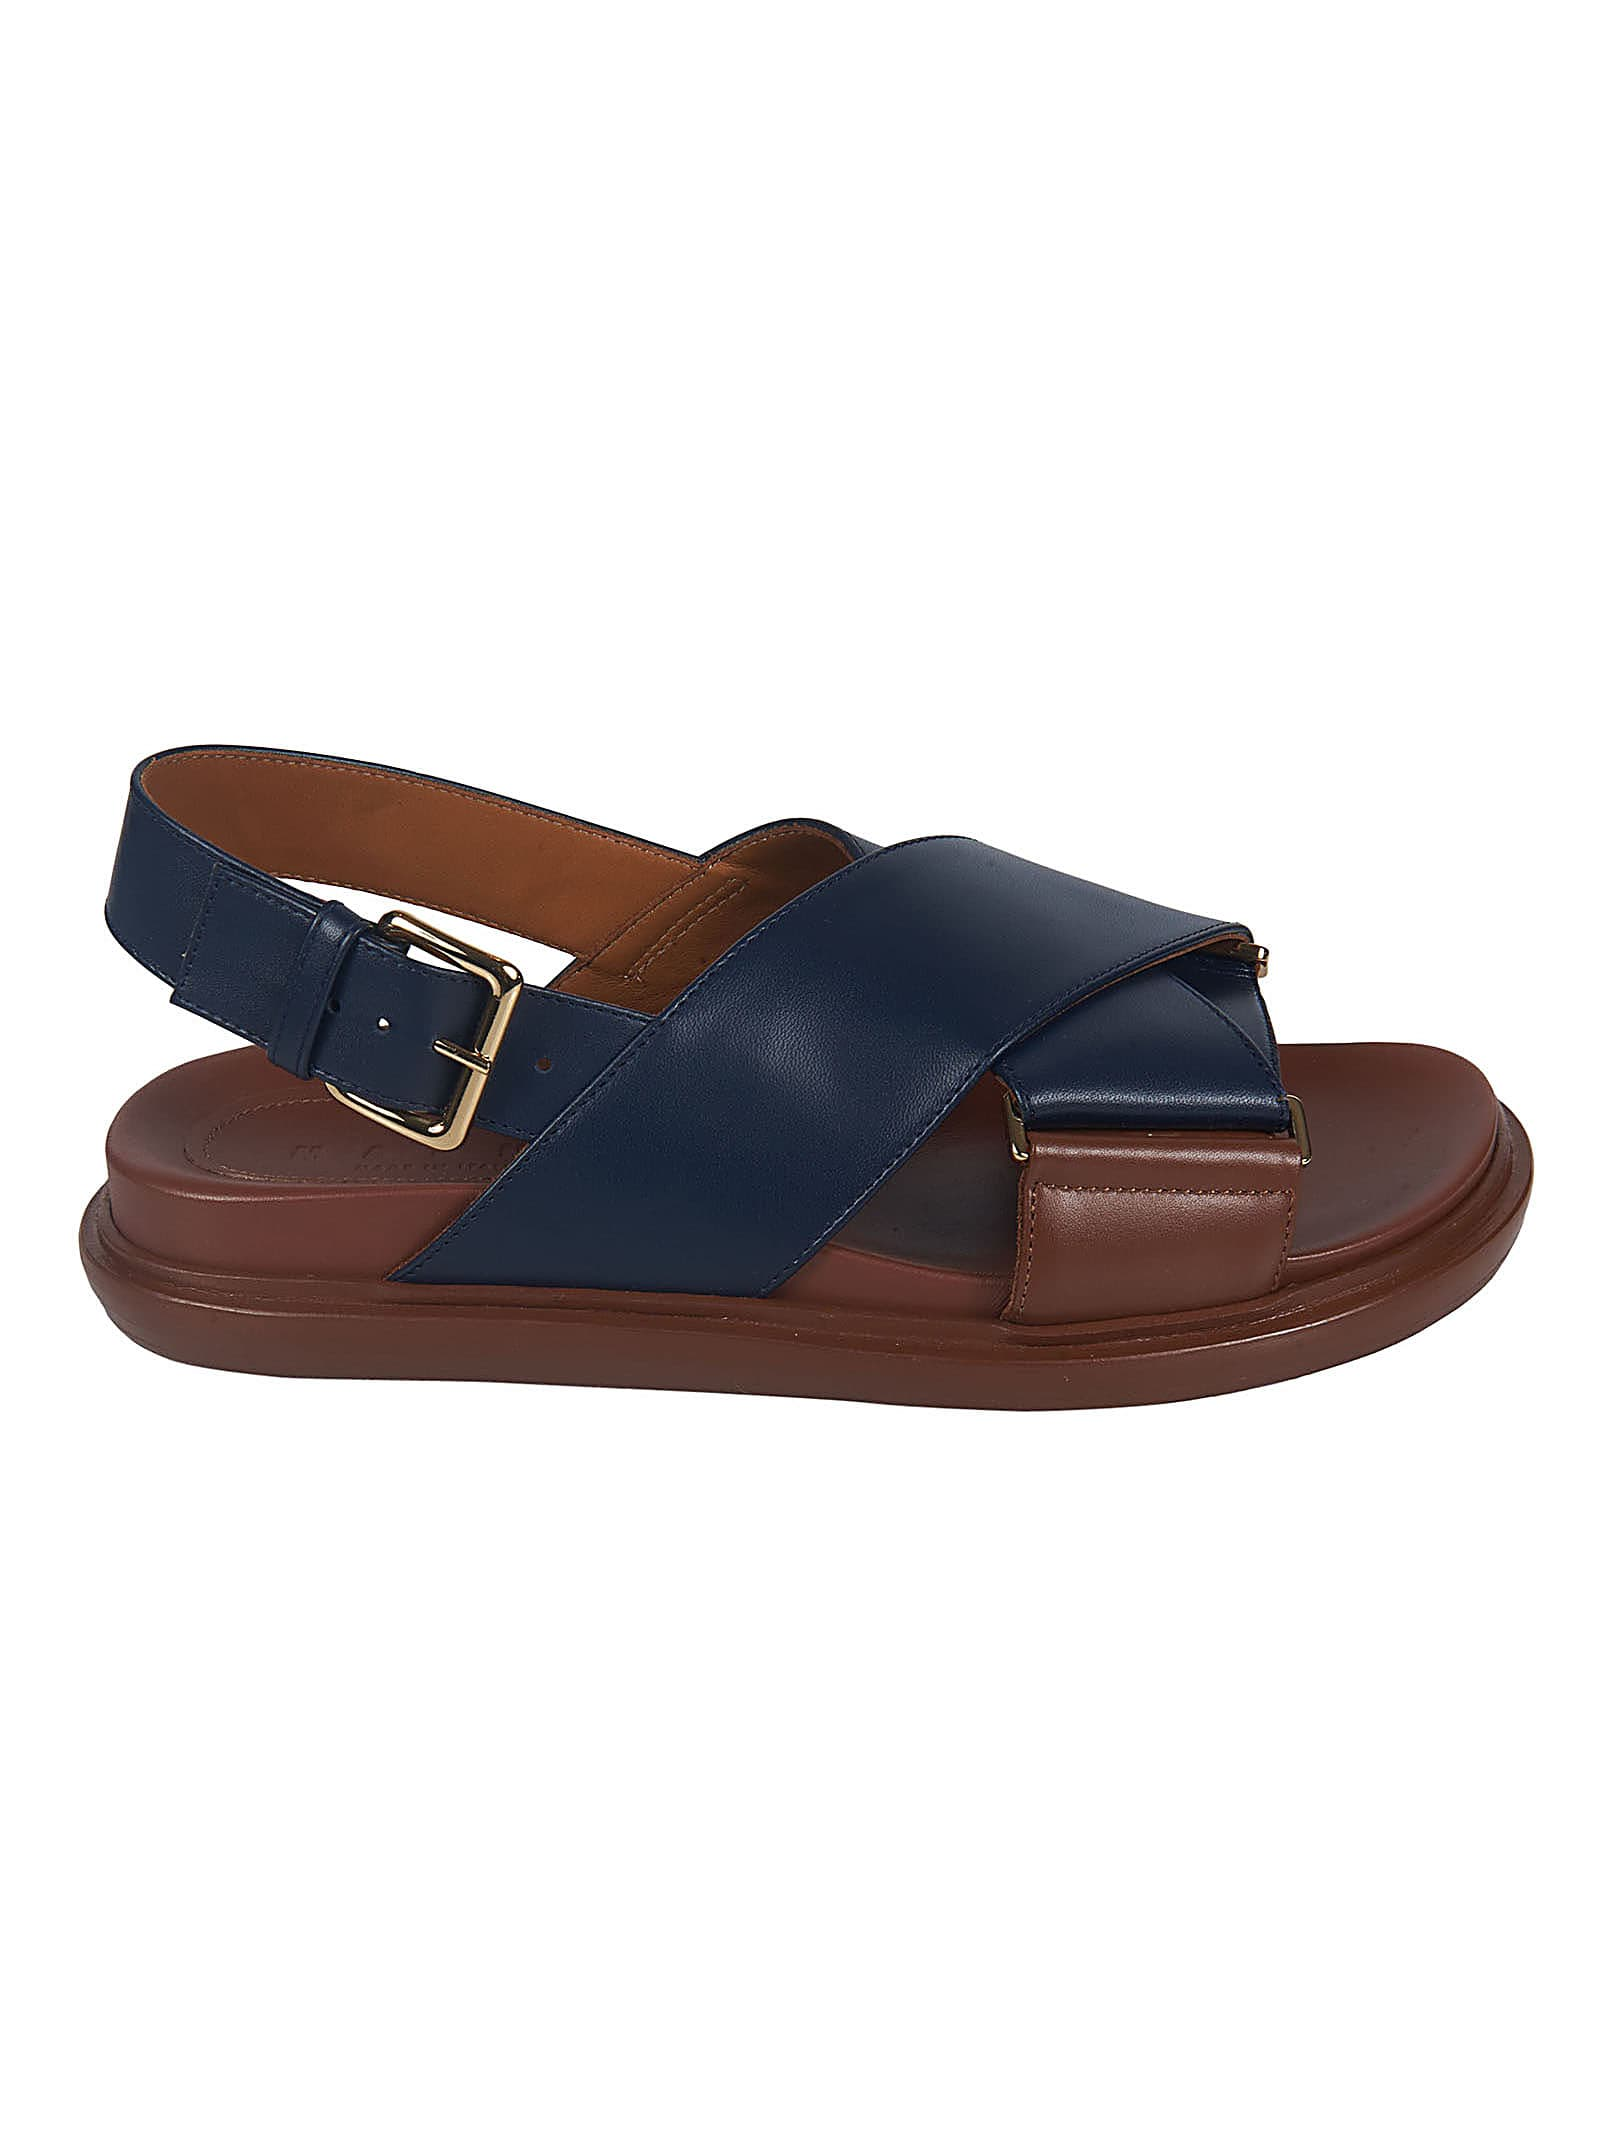 Buy Marni Cross-strap Side Buckled Flat Sandals online, shop Marni shoes with free shipping